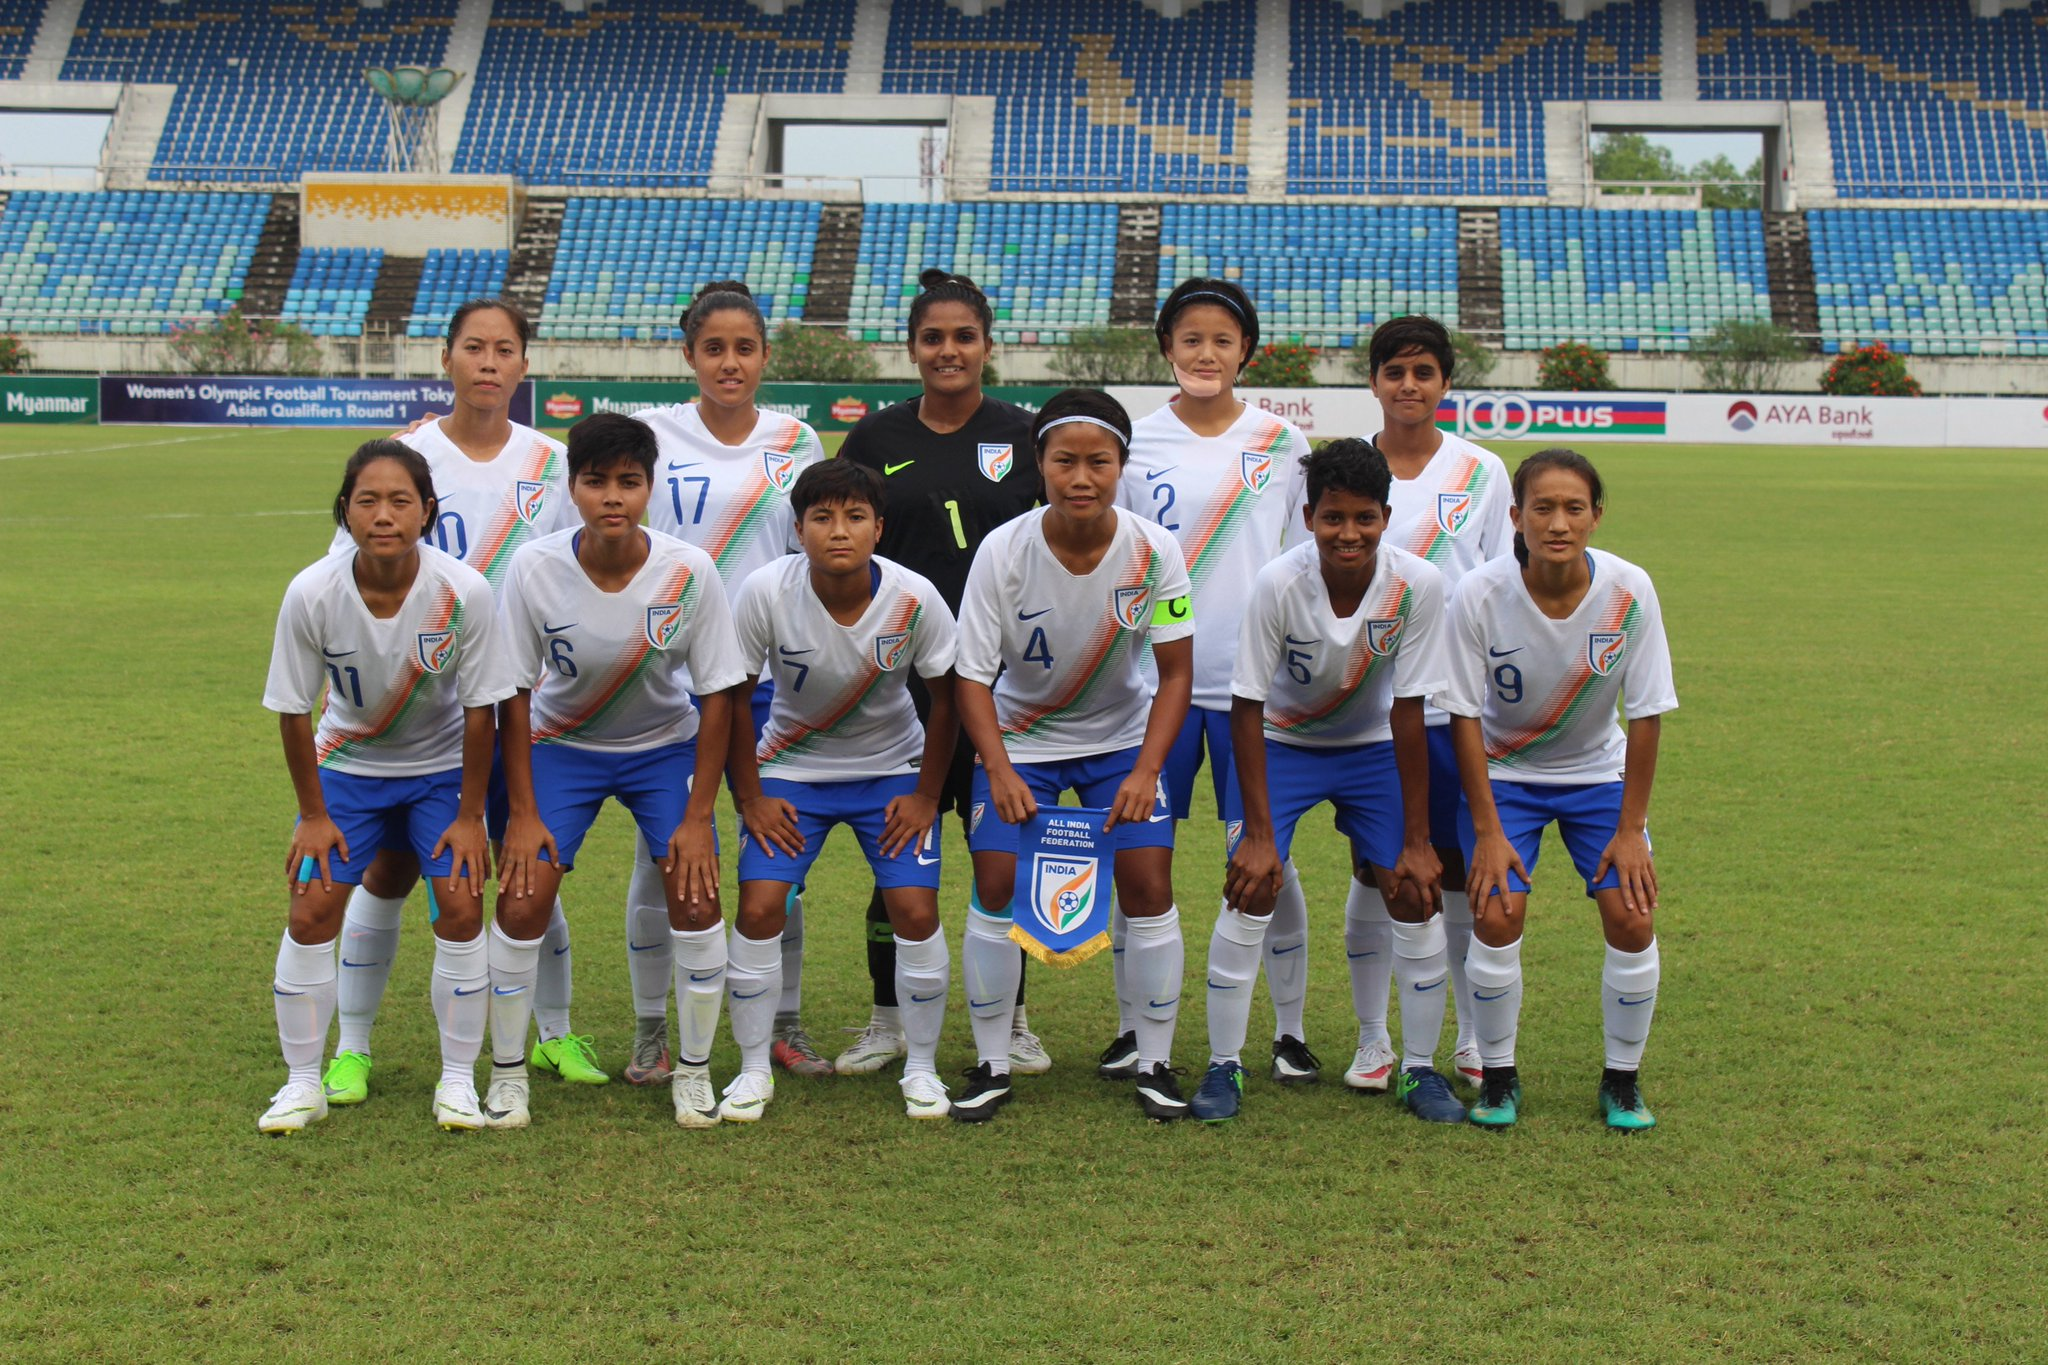 Indian women's football team are one step closer to making it to the next round of Olympic Qualifiers